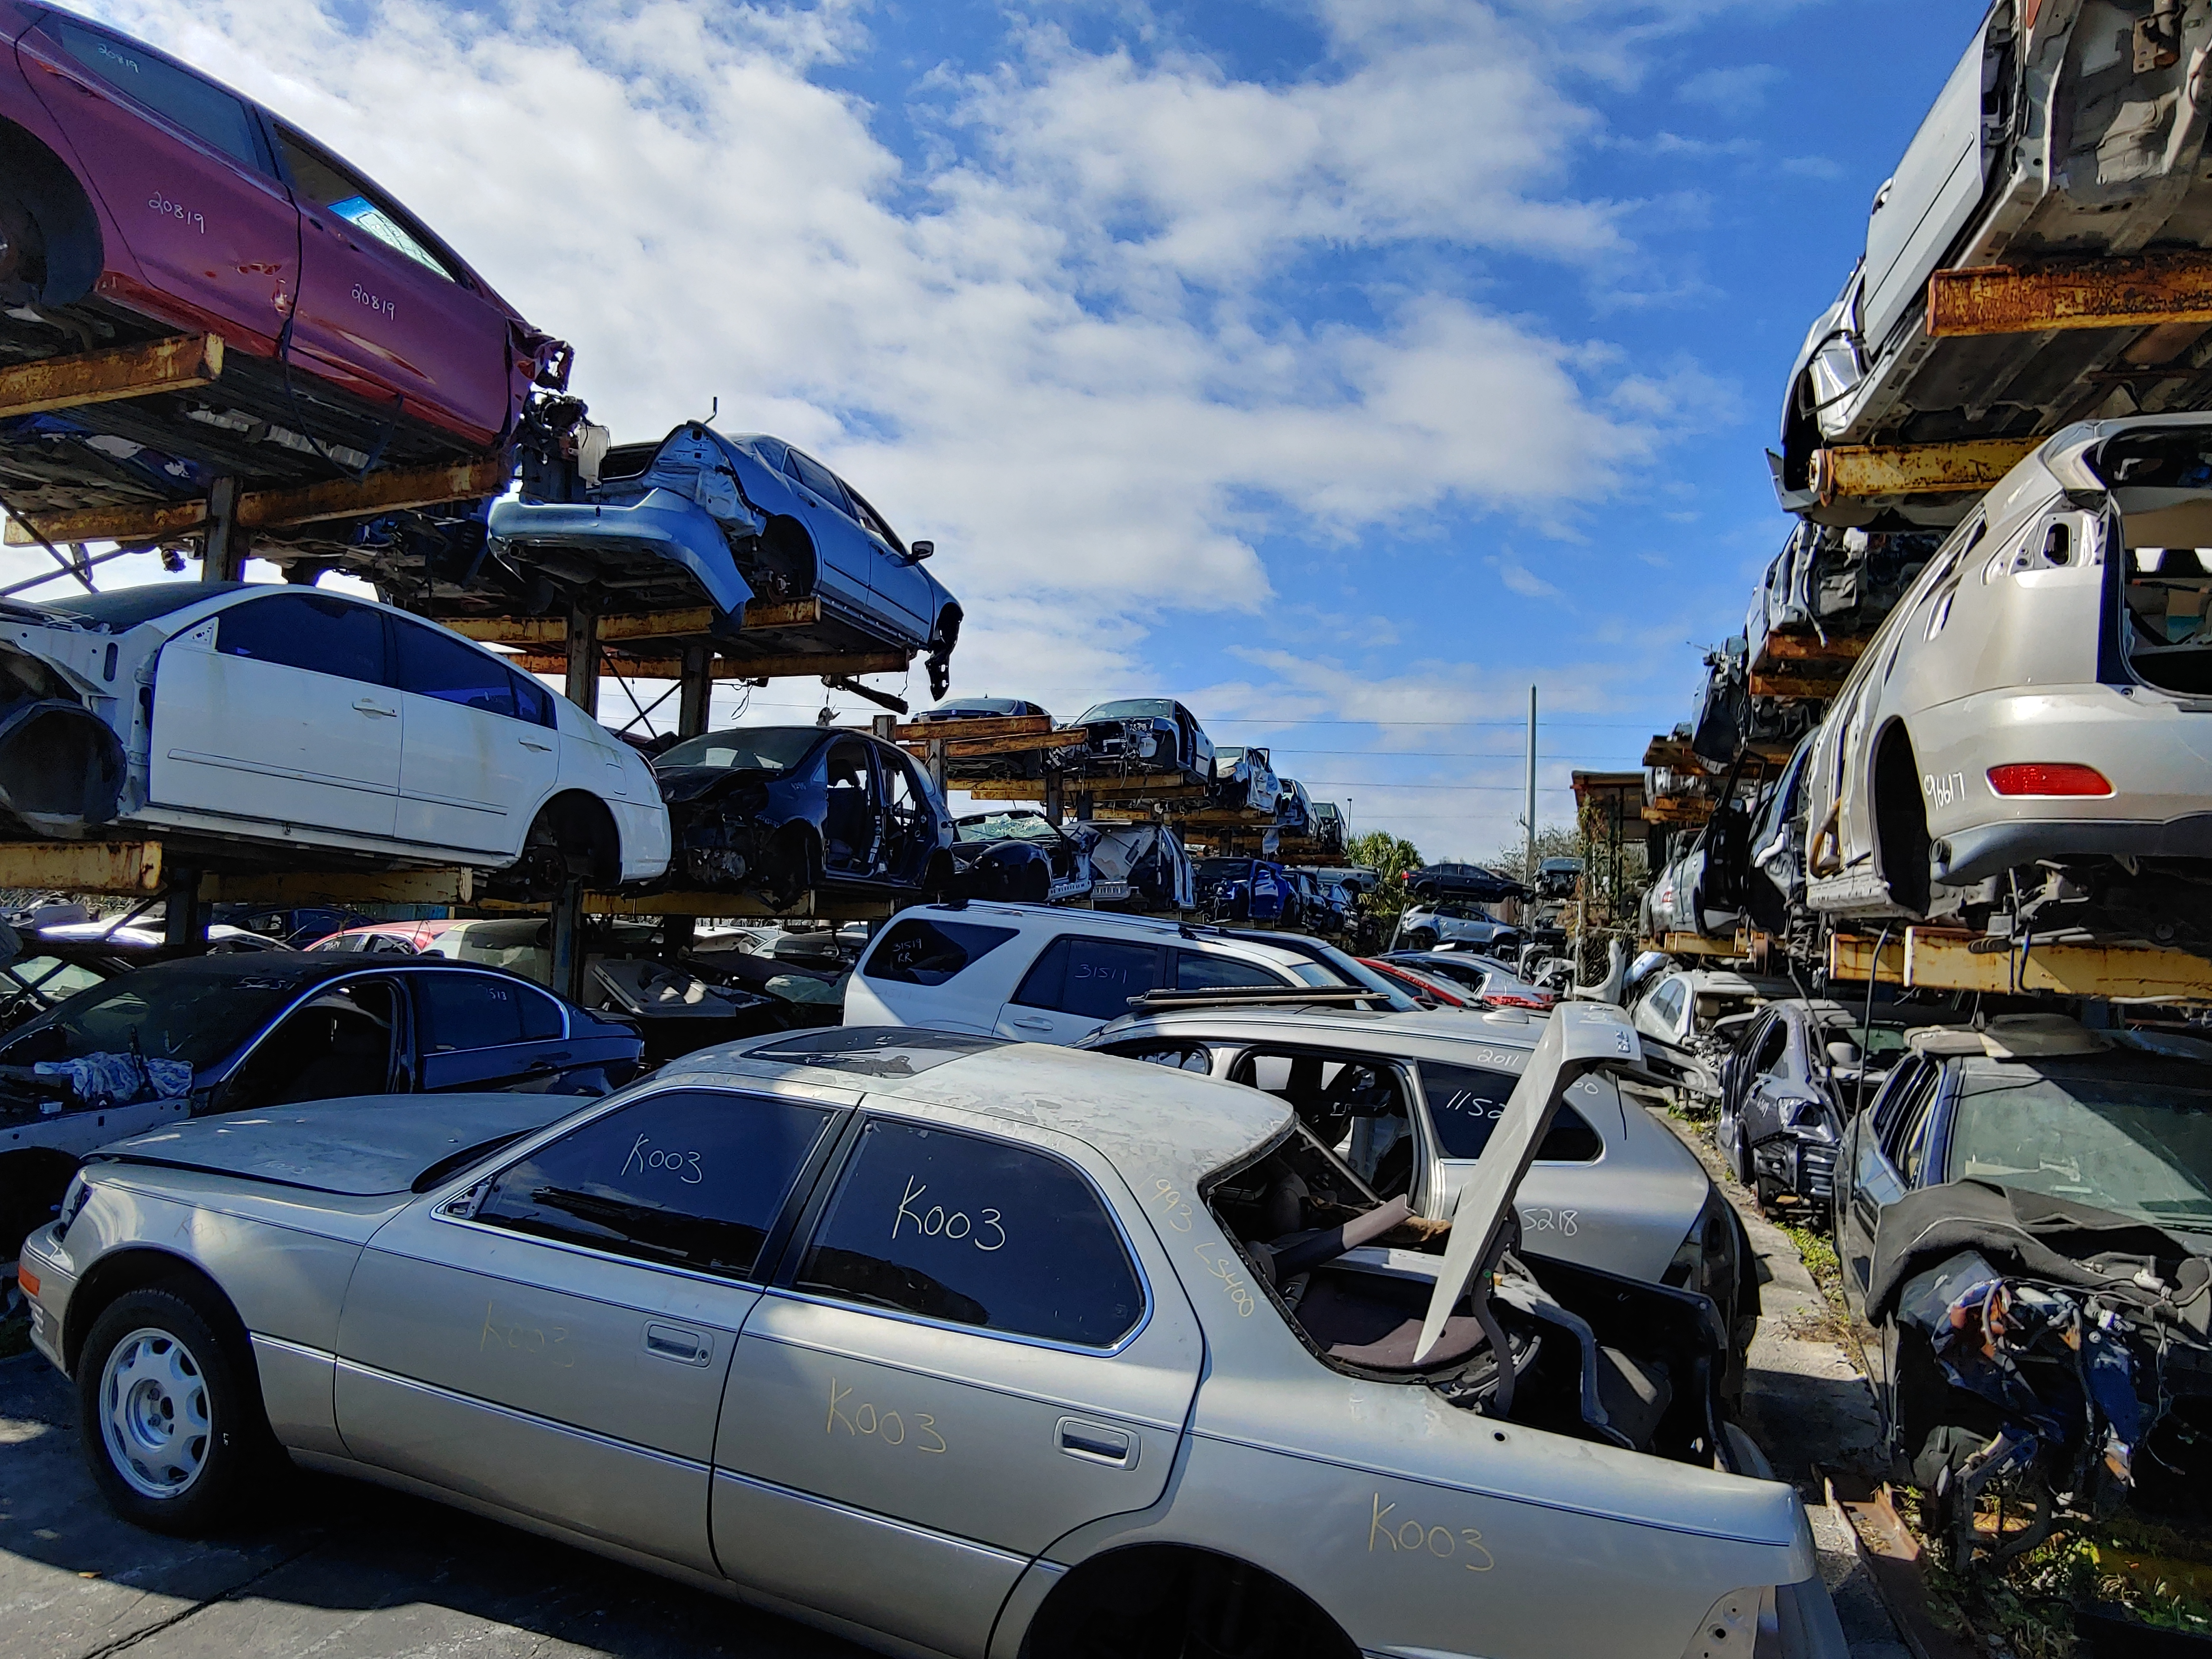 Junk Yards Near West Palm Beach Quality Used Car Parts Store Gardner Auto Parts